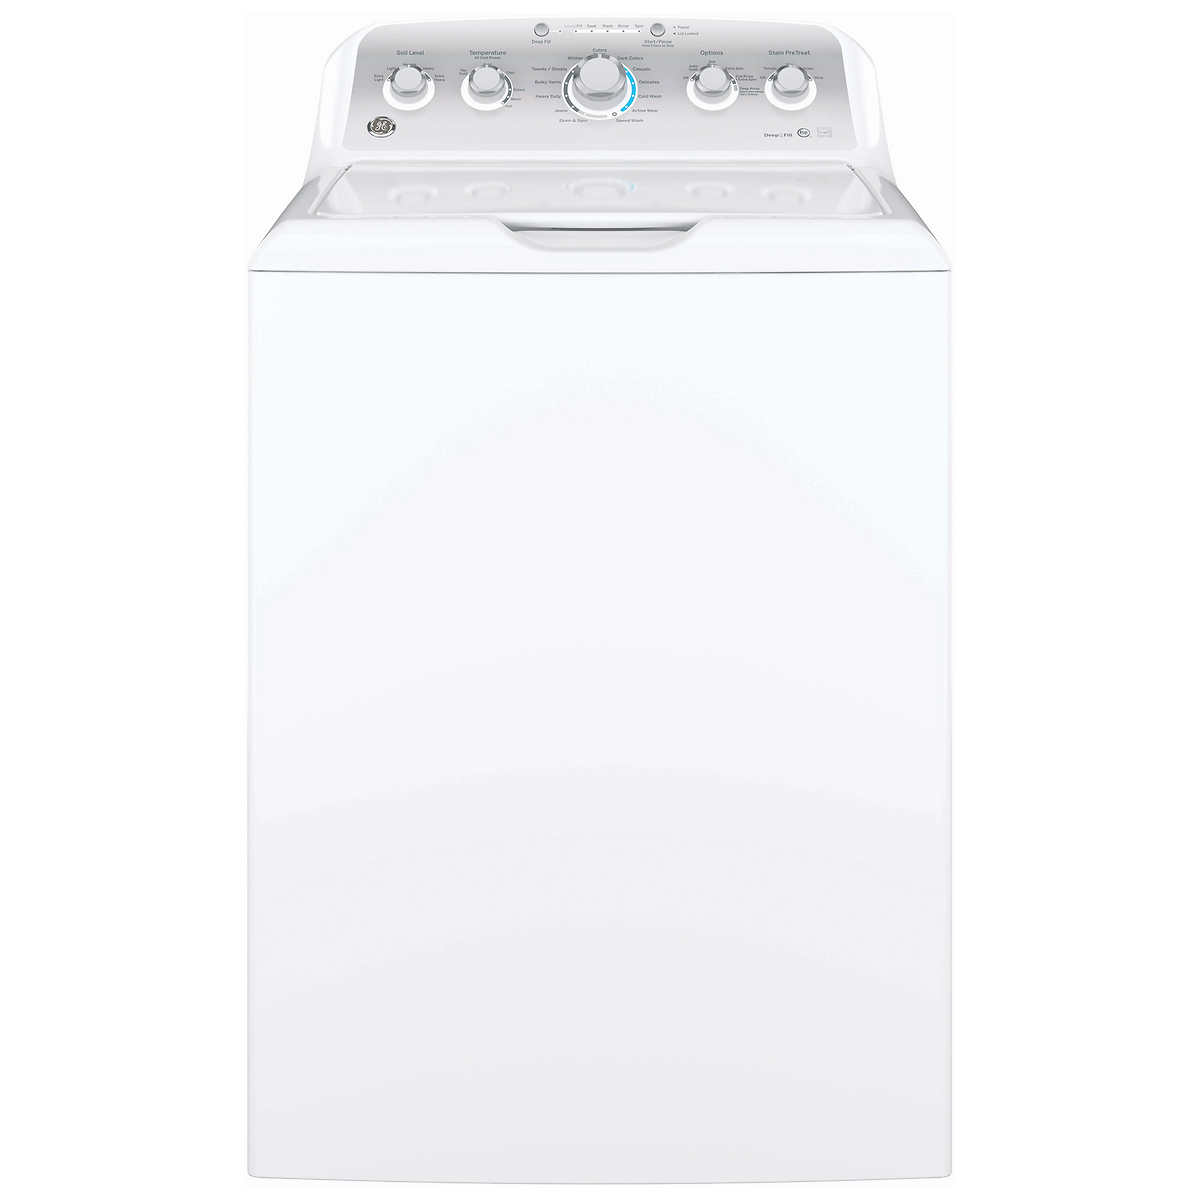 Ge Service Phone Number Ge 46 Cuft Capacity Top Load Washer In White